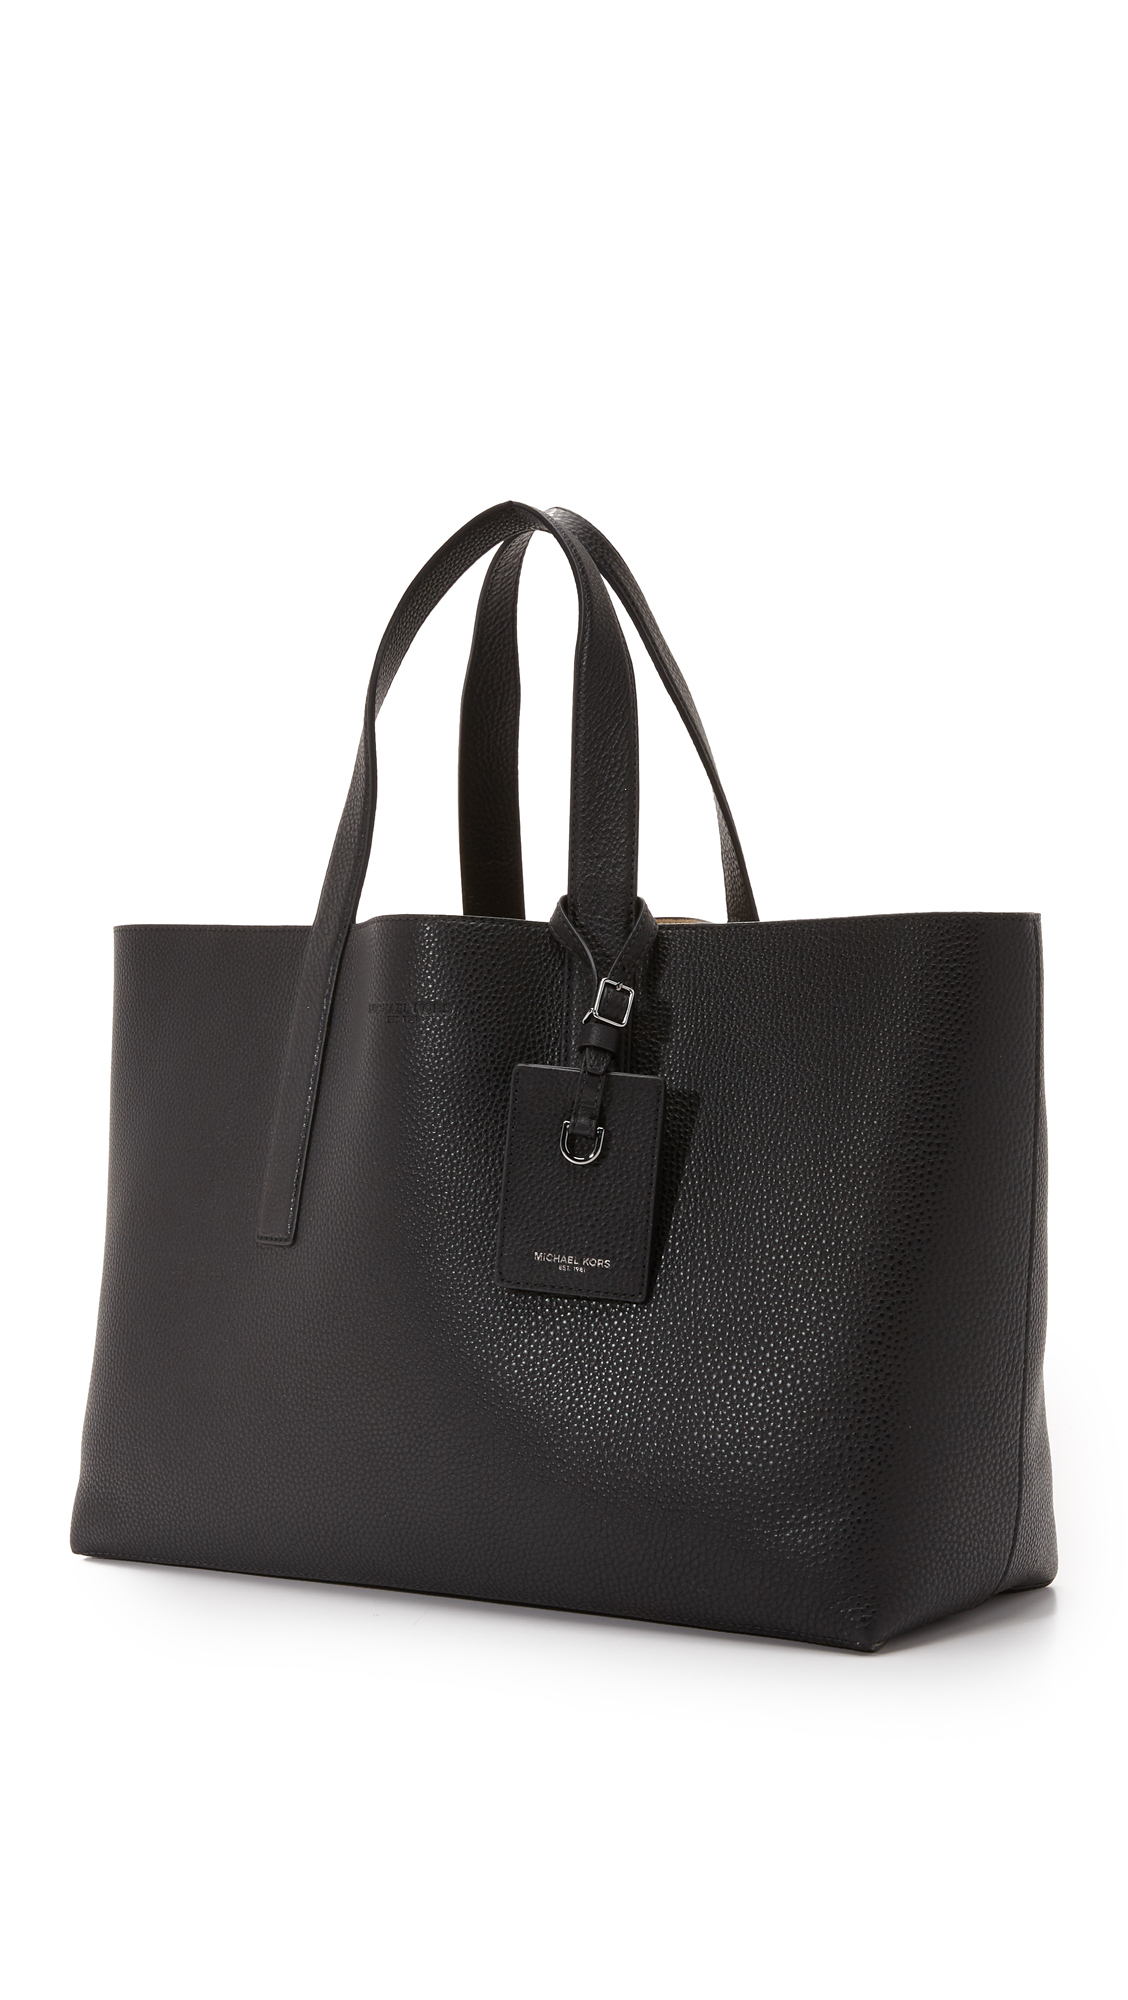 3e7b20c15e77dc Michael Kors Mason East West Reversible Leather Tote in Black for ...